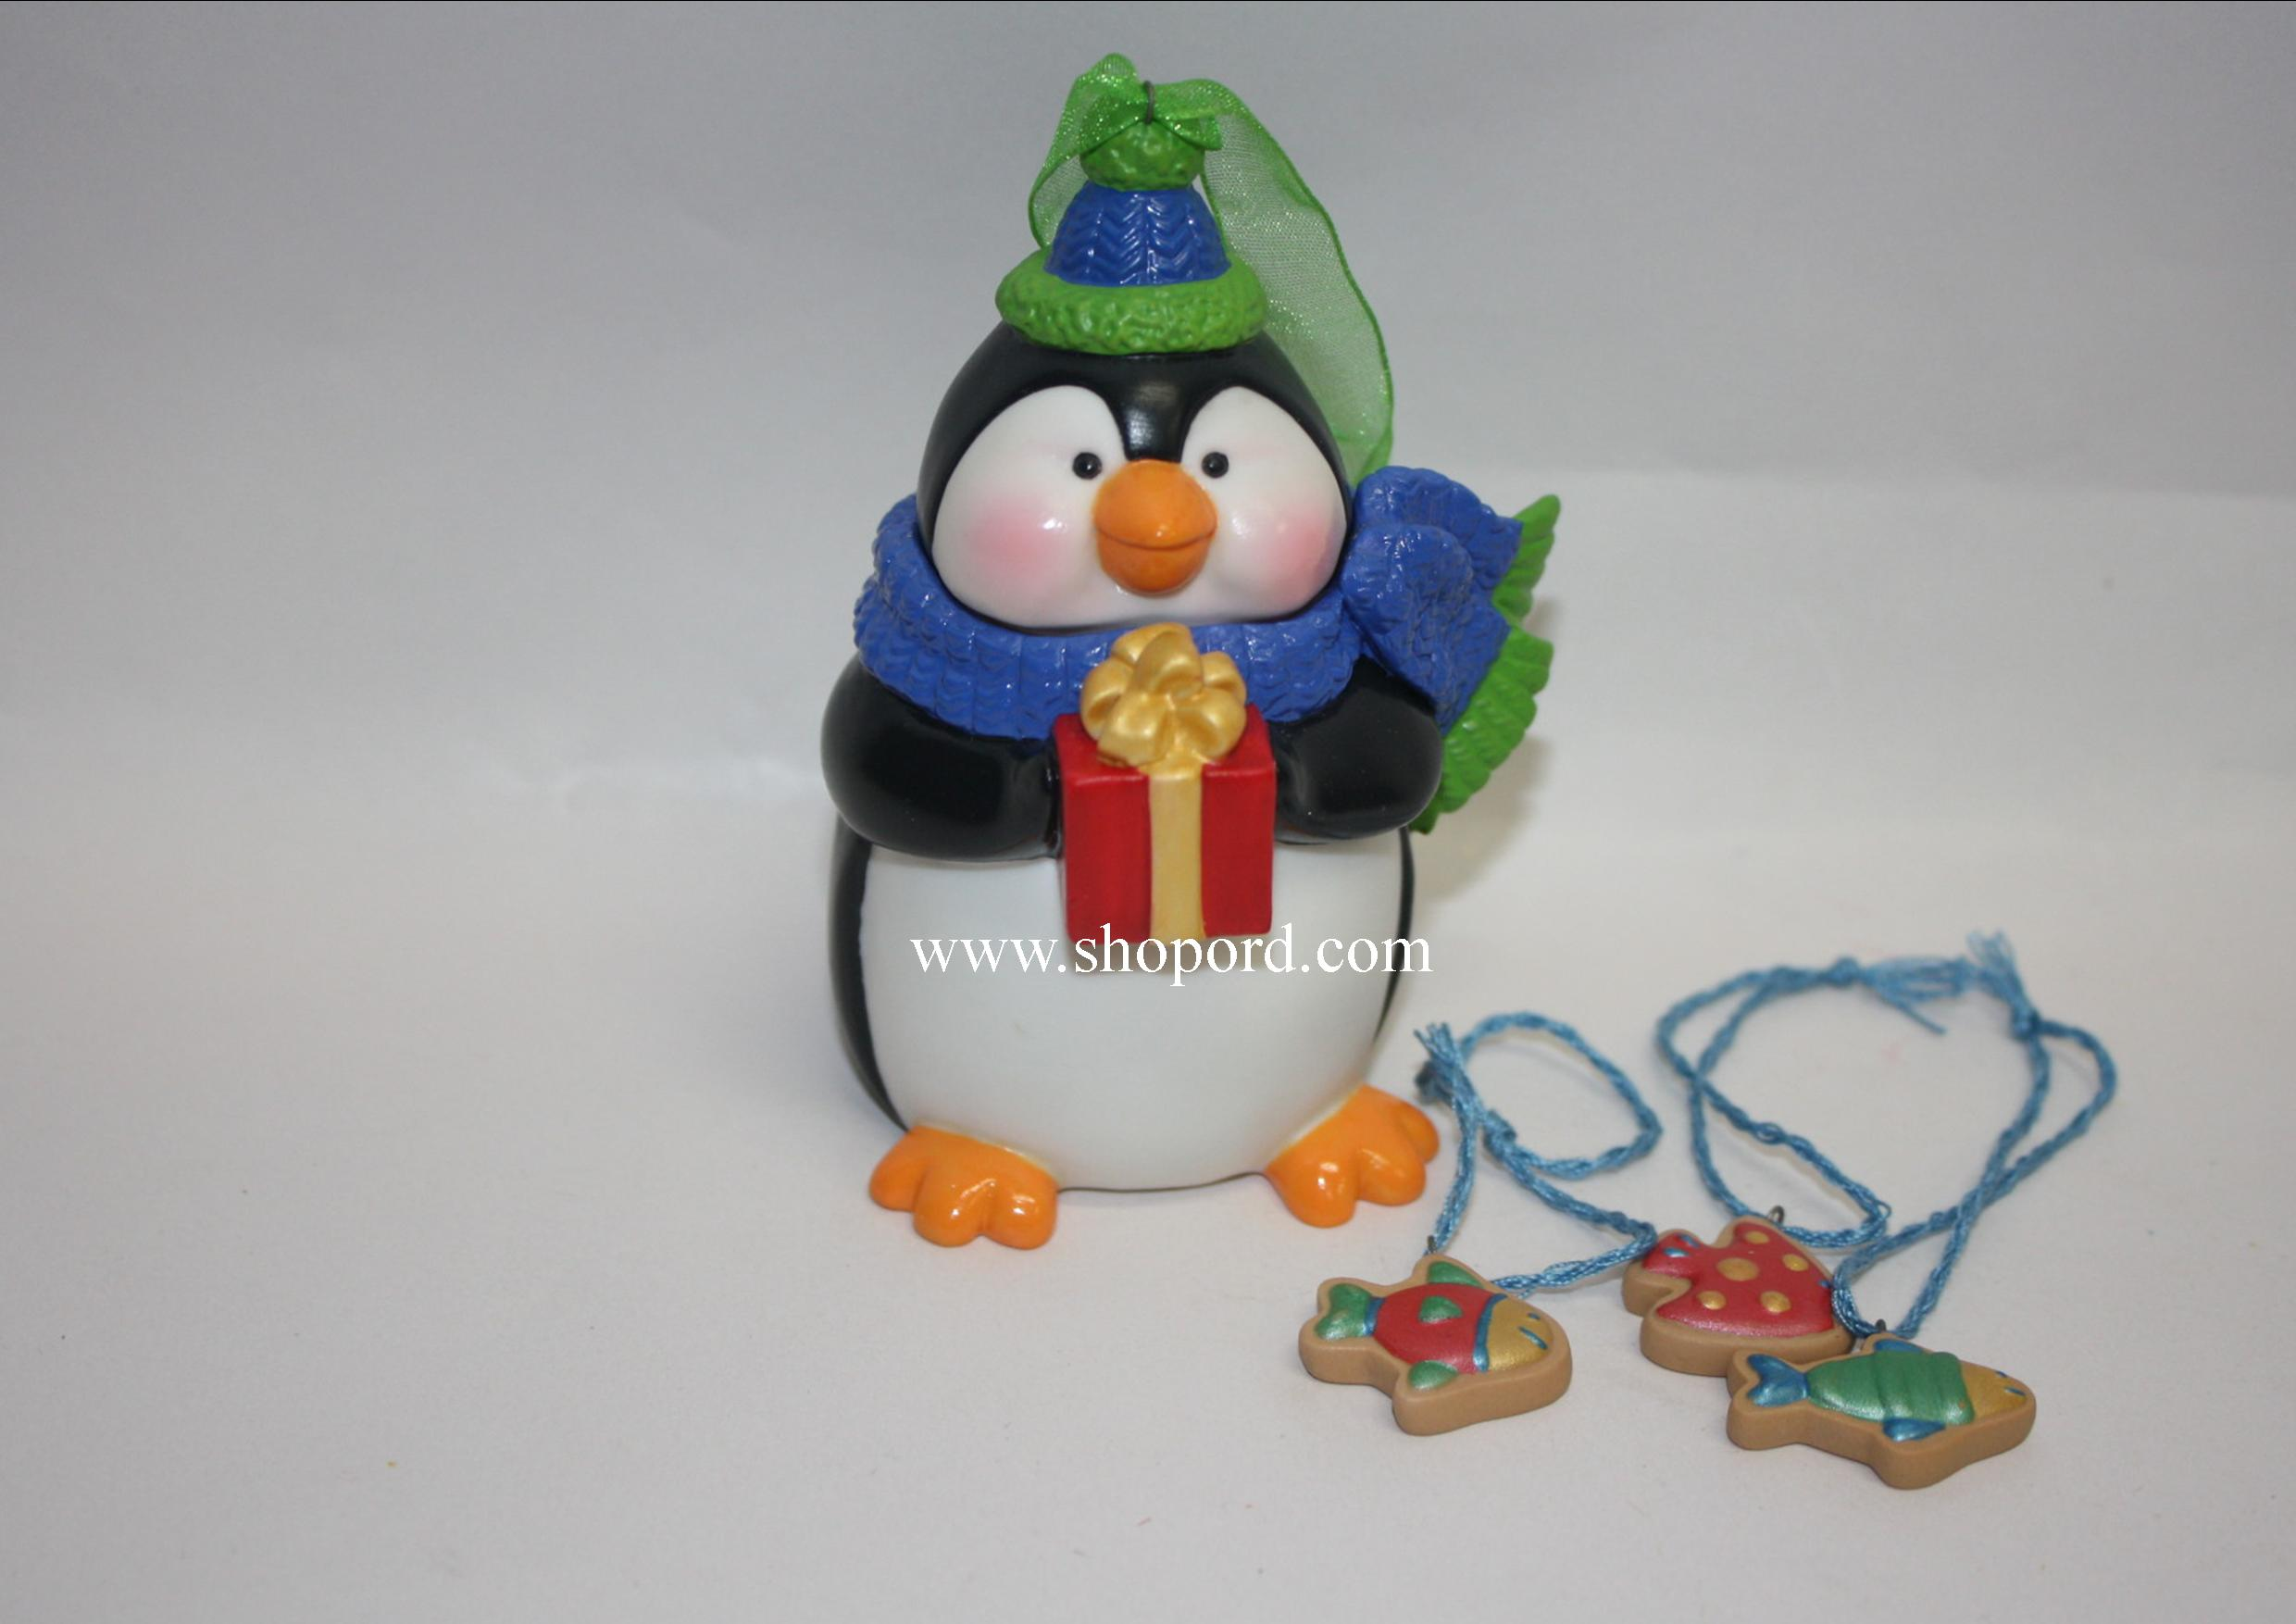 Hallmark 2005 Sweet Tooth Treats Ornament 4th in the series QX2175 Box Bent